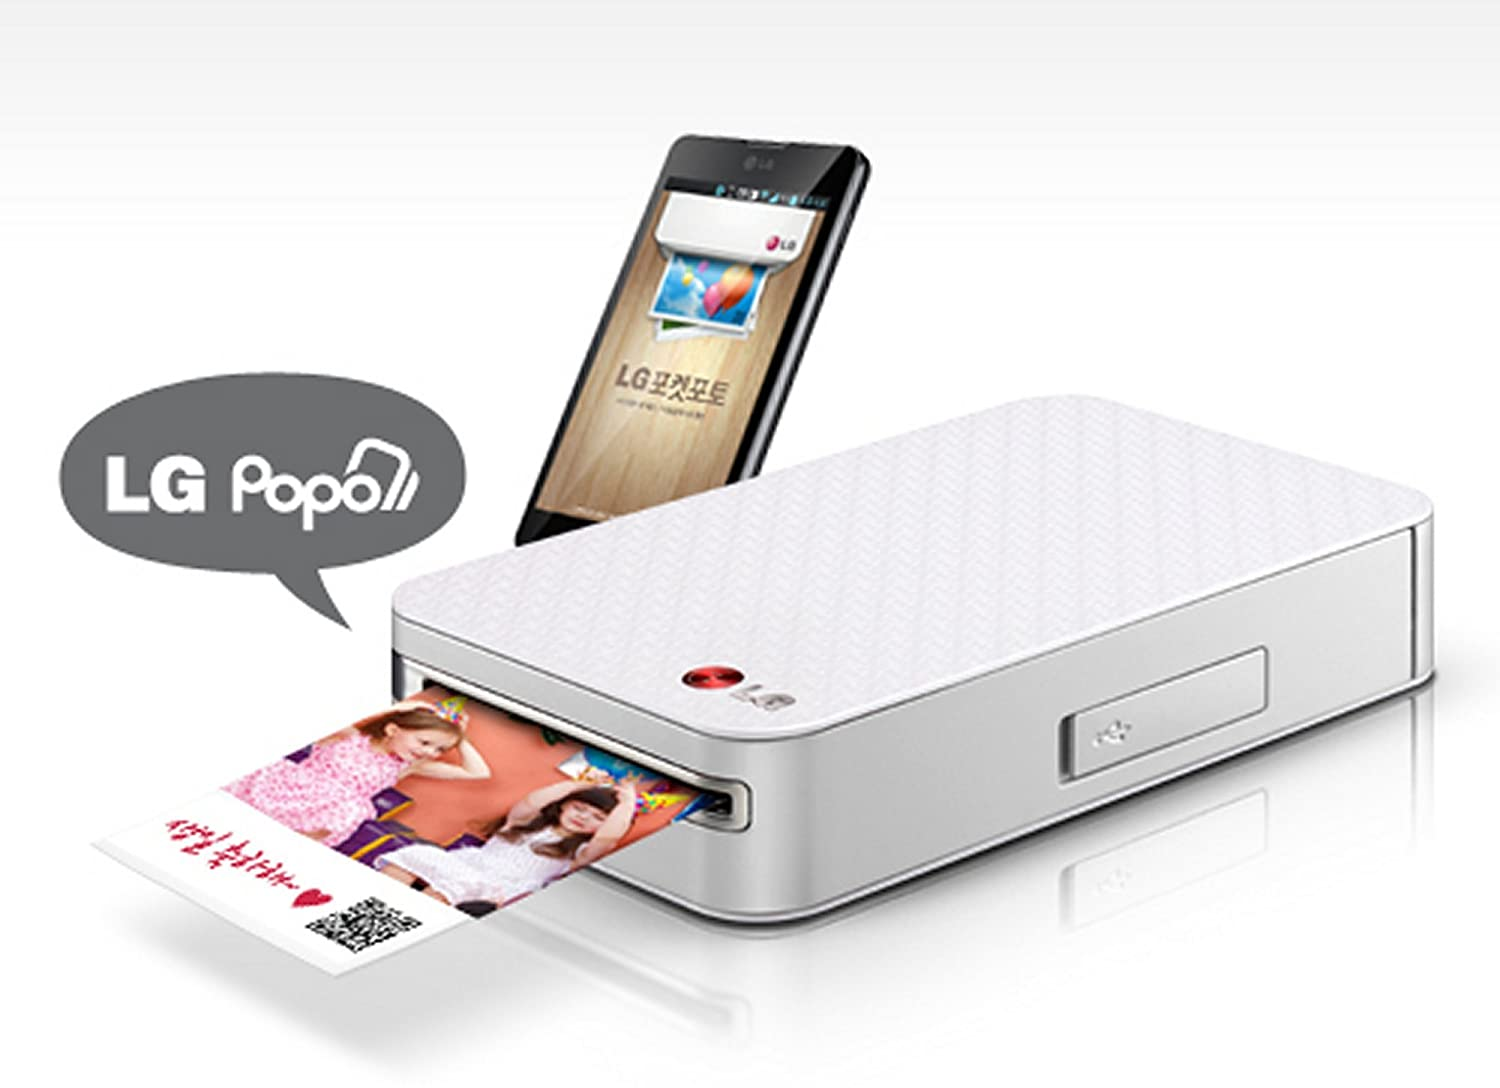 LG-Pocket-Photo-PD221-SILVER-Mini-Mobile-Printer-for-Android-Smartphone